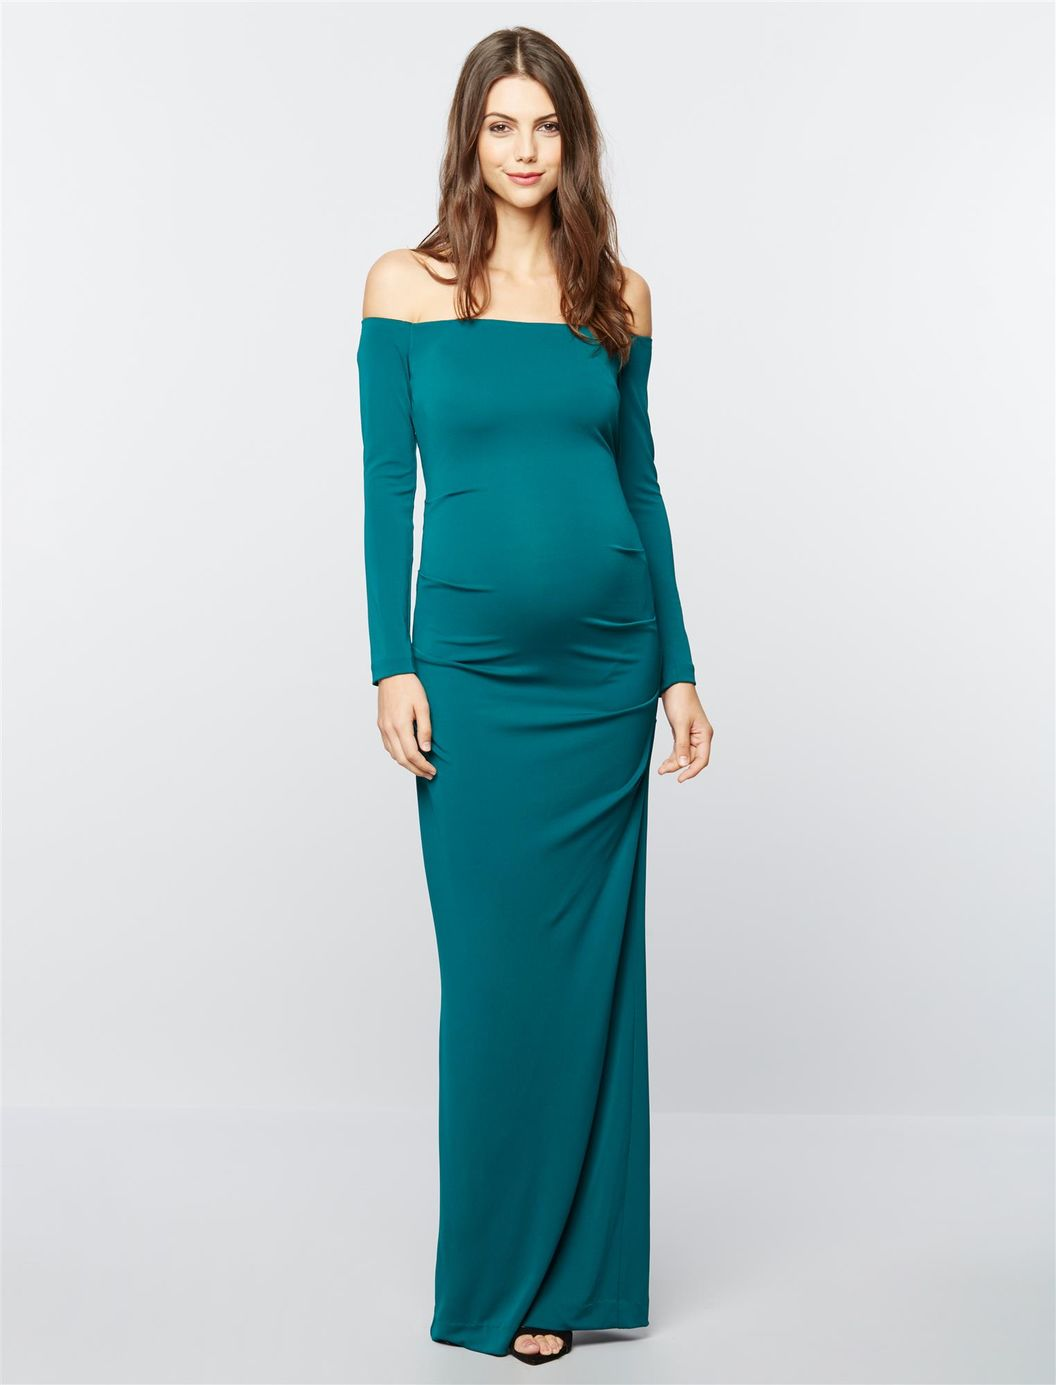 55 Cheap Maternity Dresses for Special Occasions - Plus Size Women ...